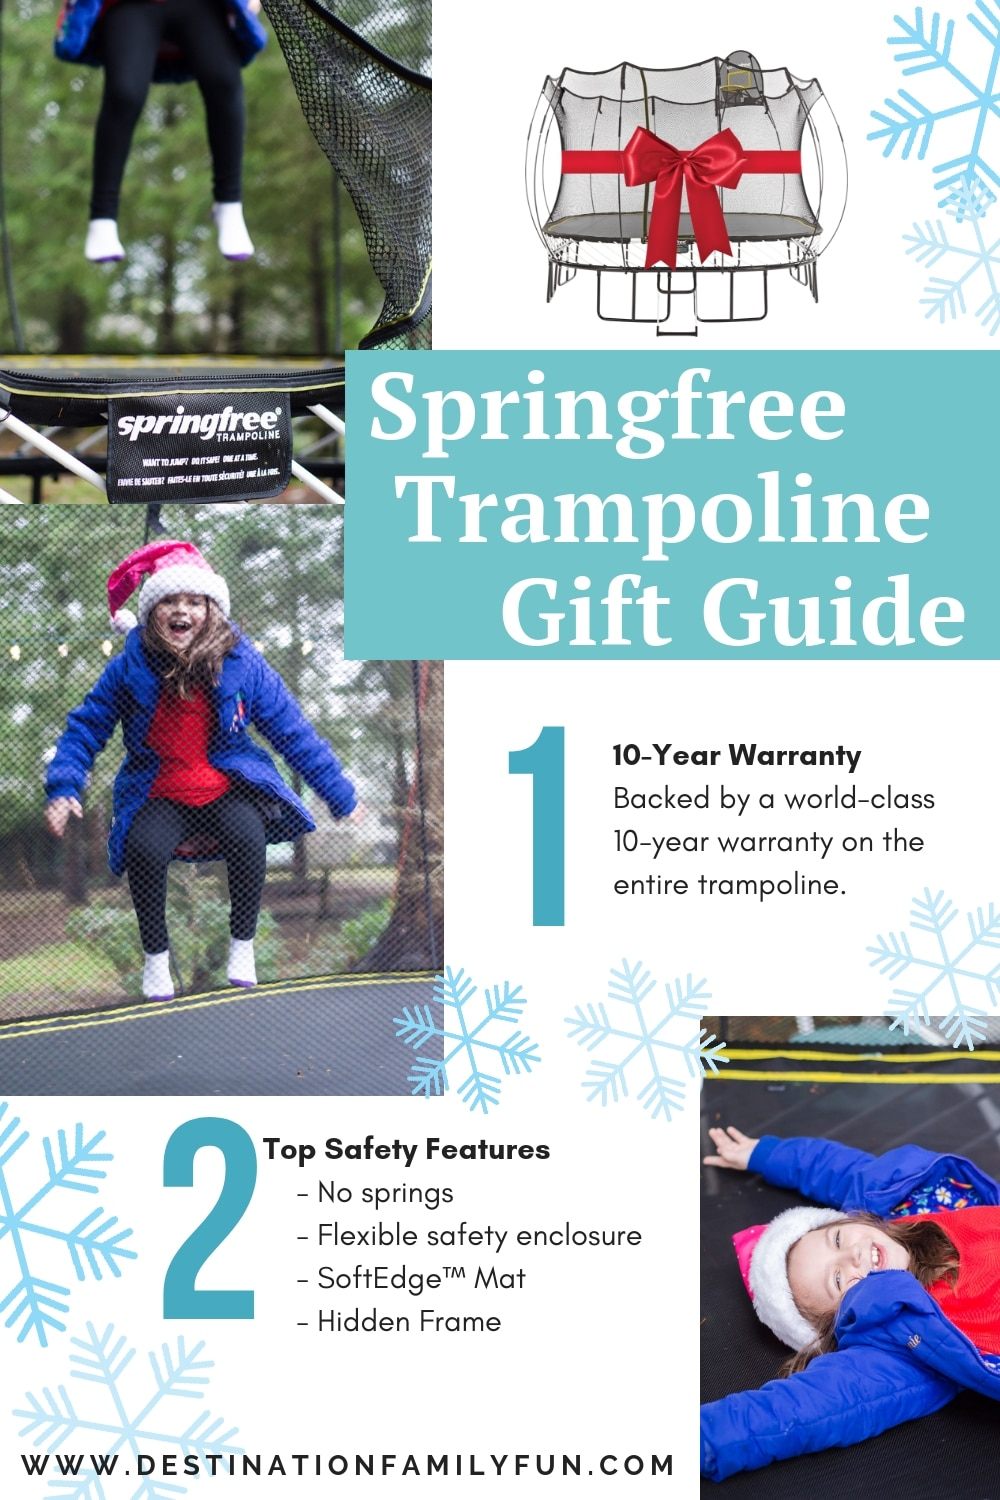 Springfree Trampoline Gift Guide